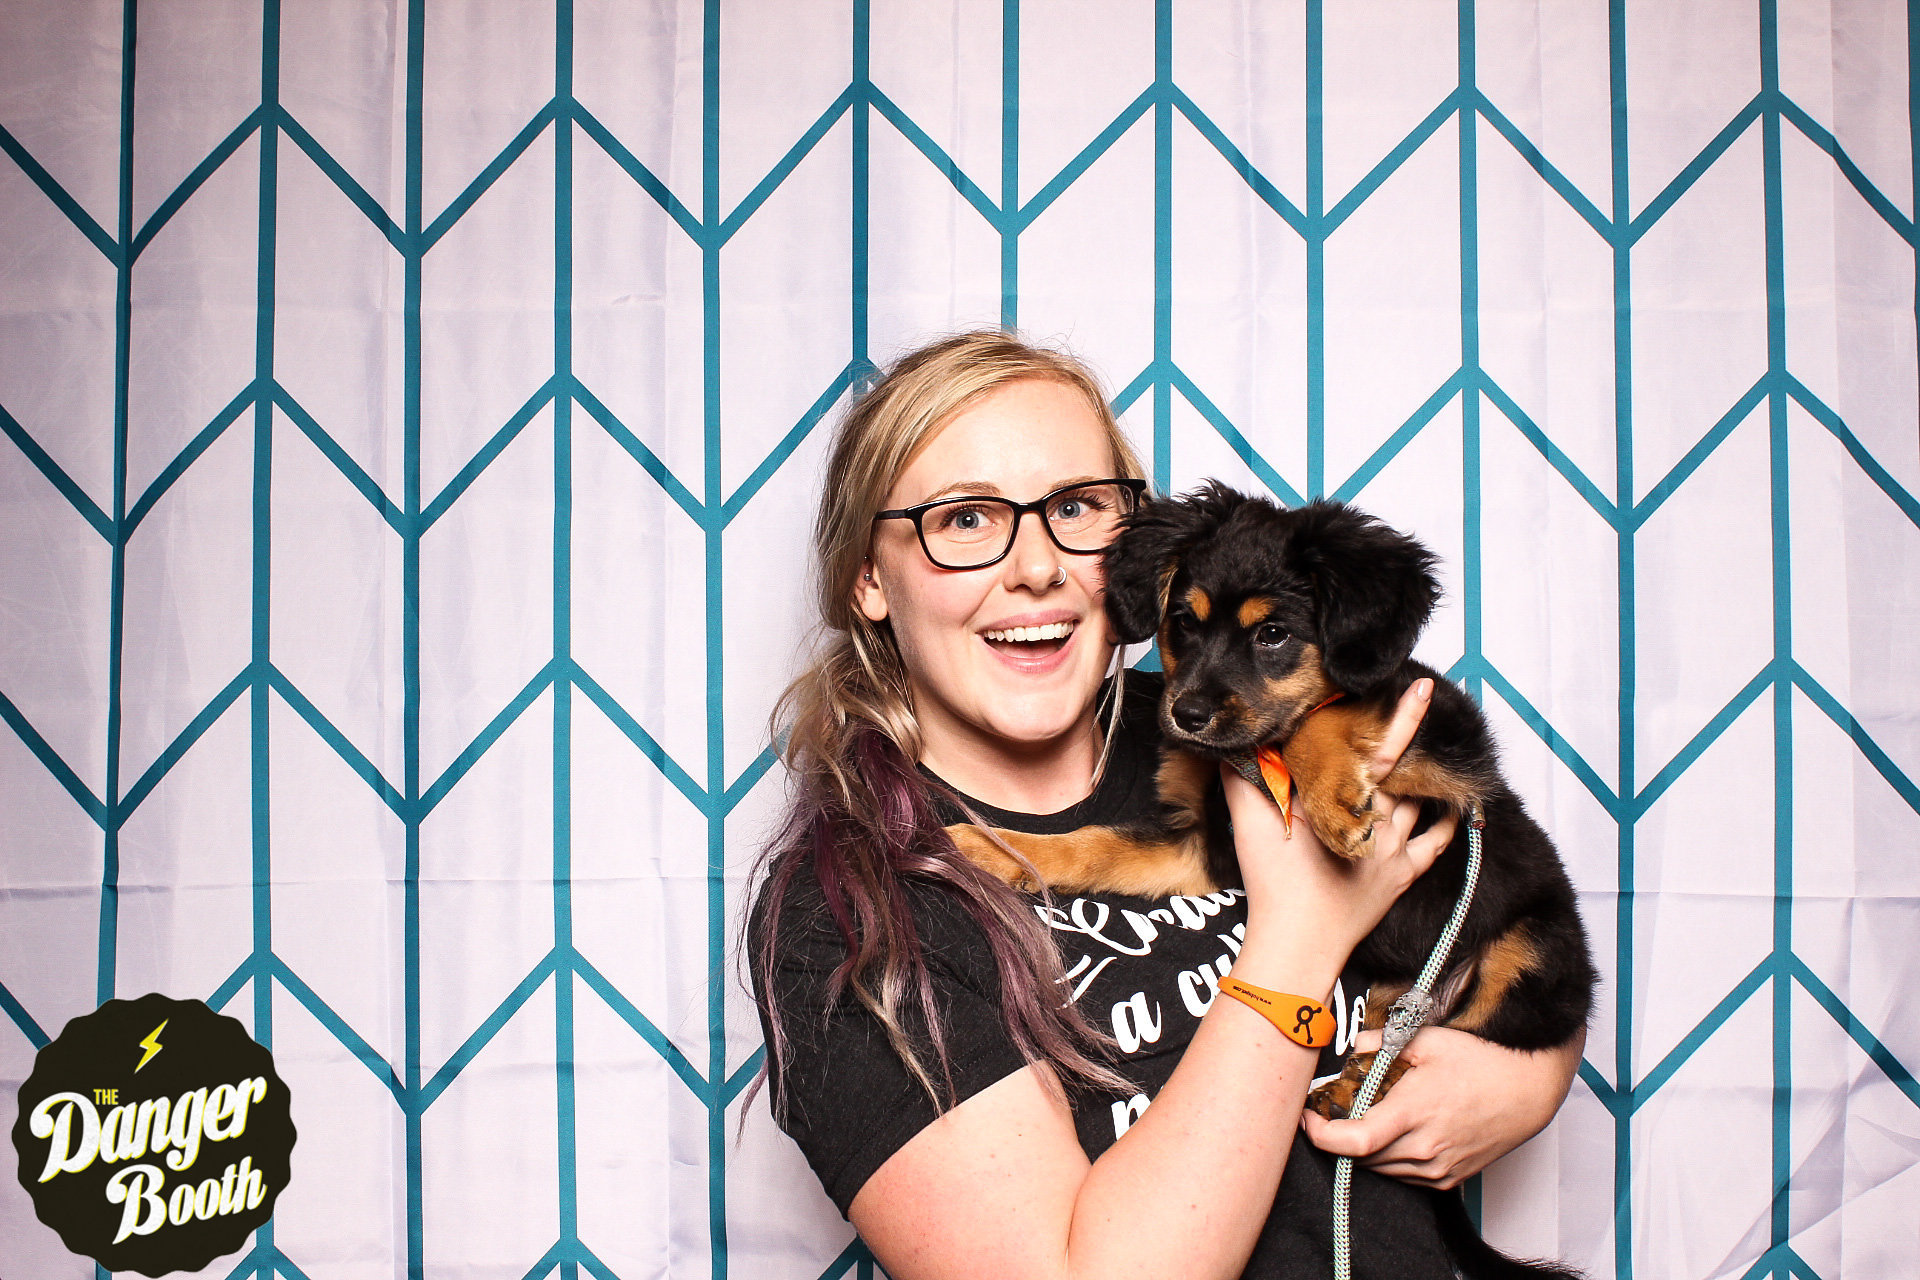 Photo Booth Rental Boston | Best Photo Booth Boston | The Danger Booth